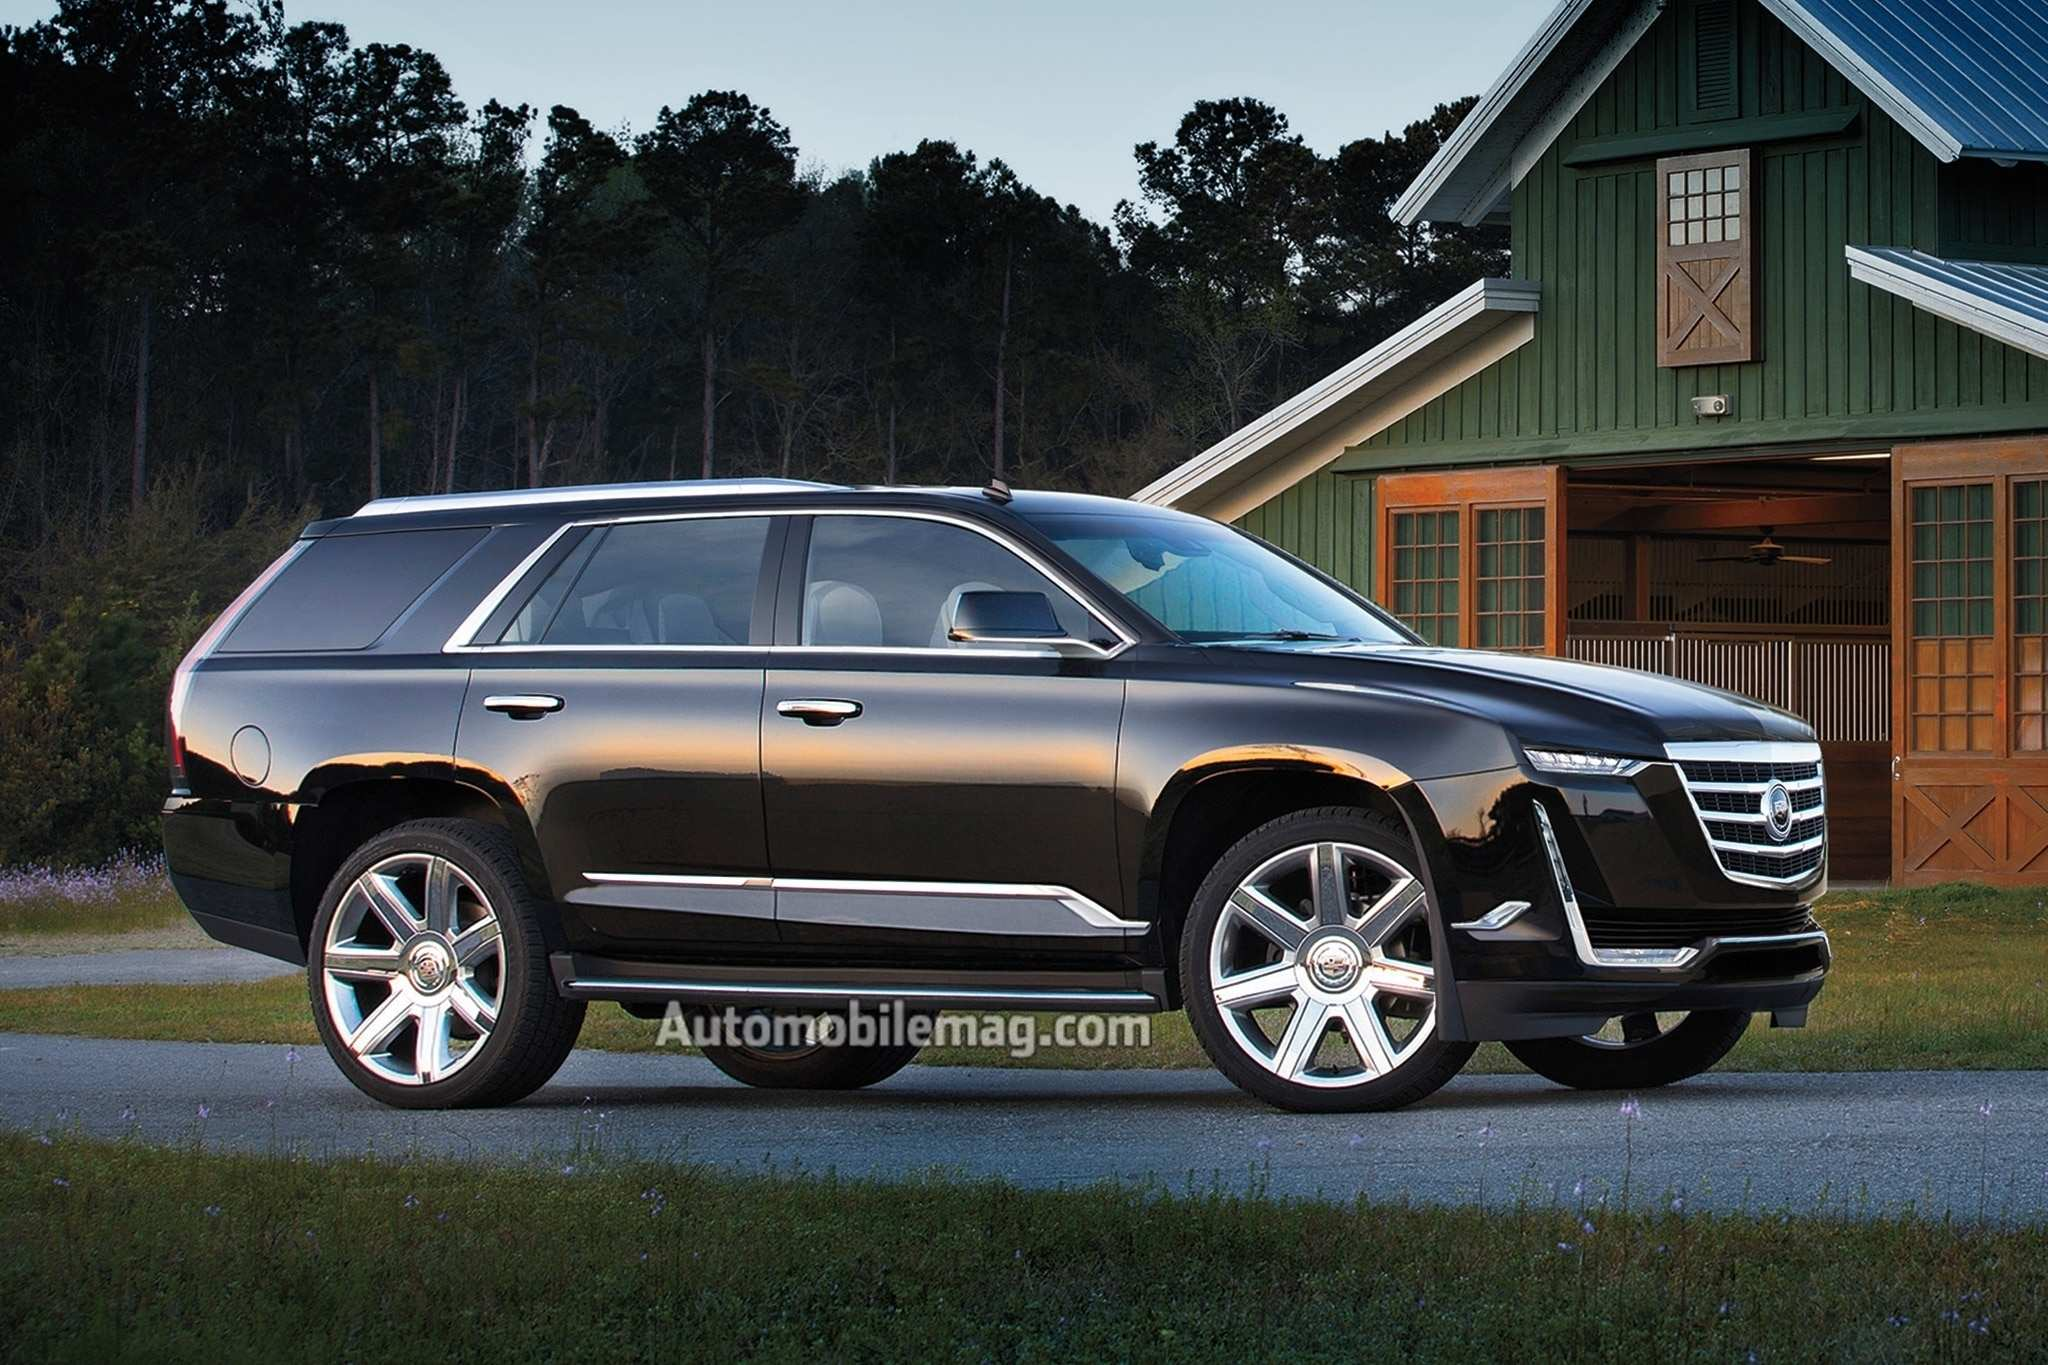 48 All New Chevrolet Tahoe 2020 Pricing